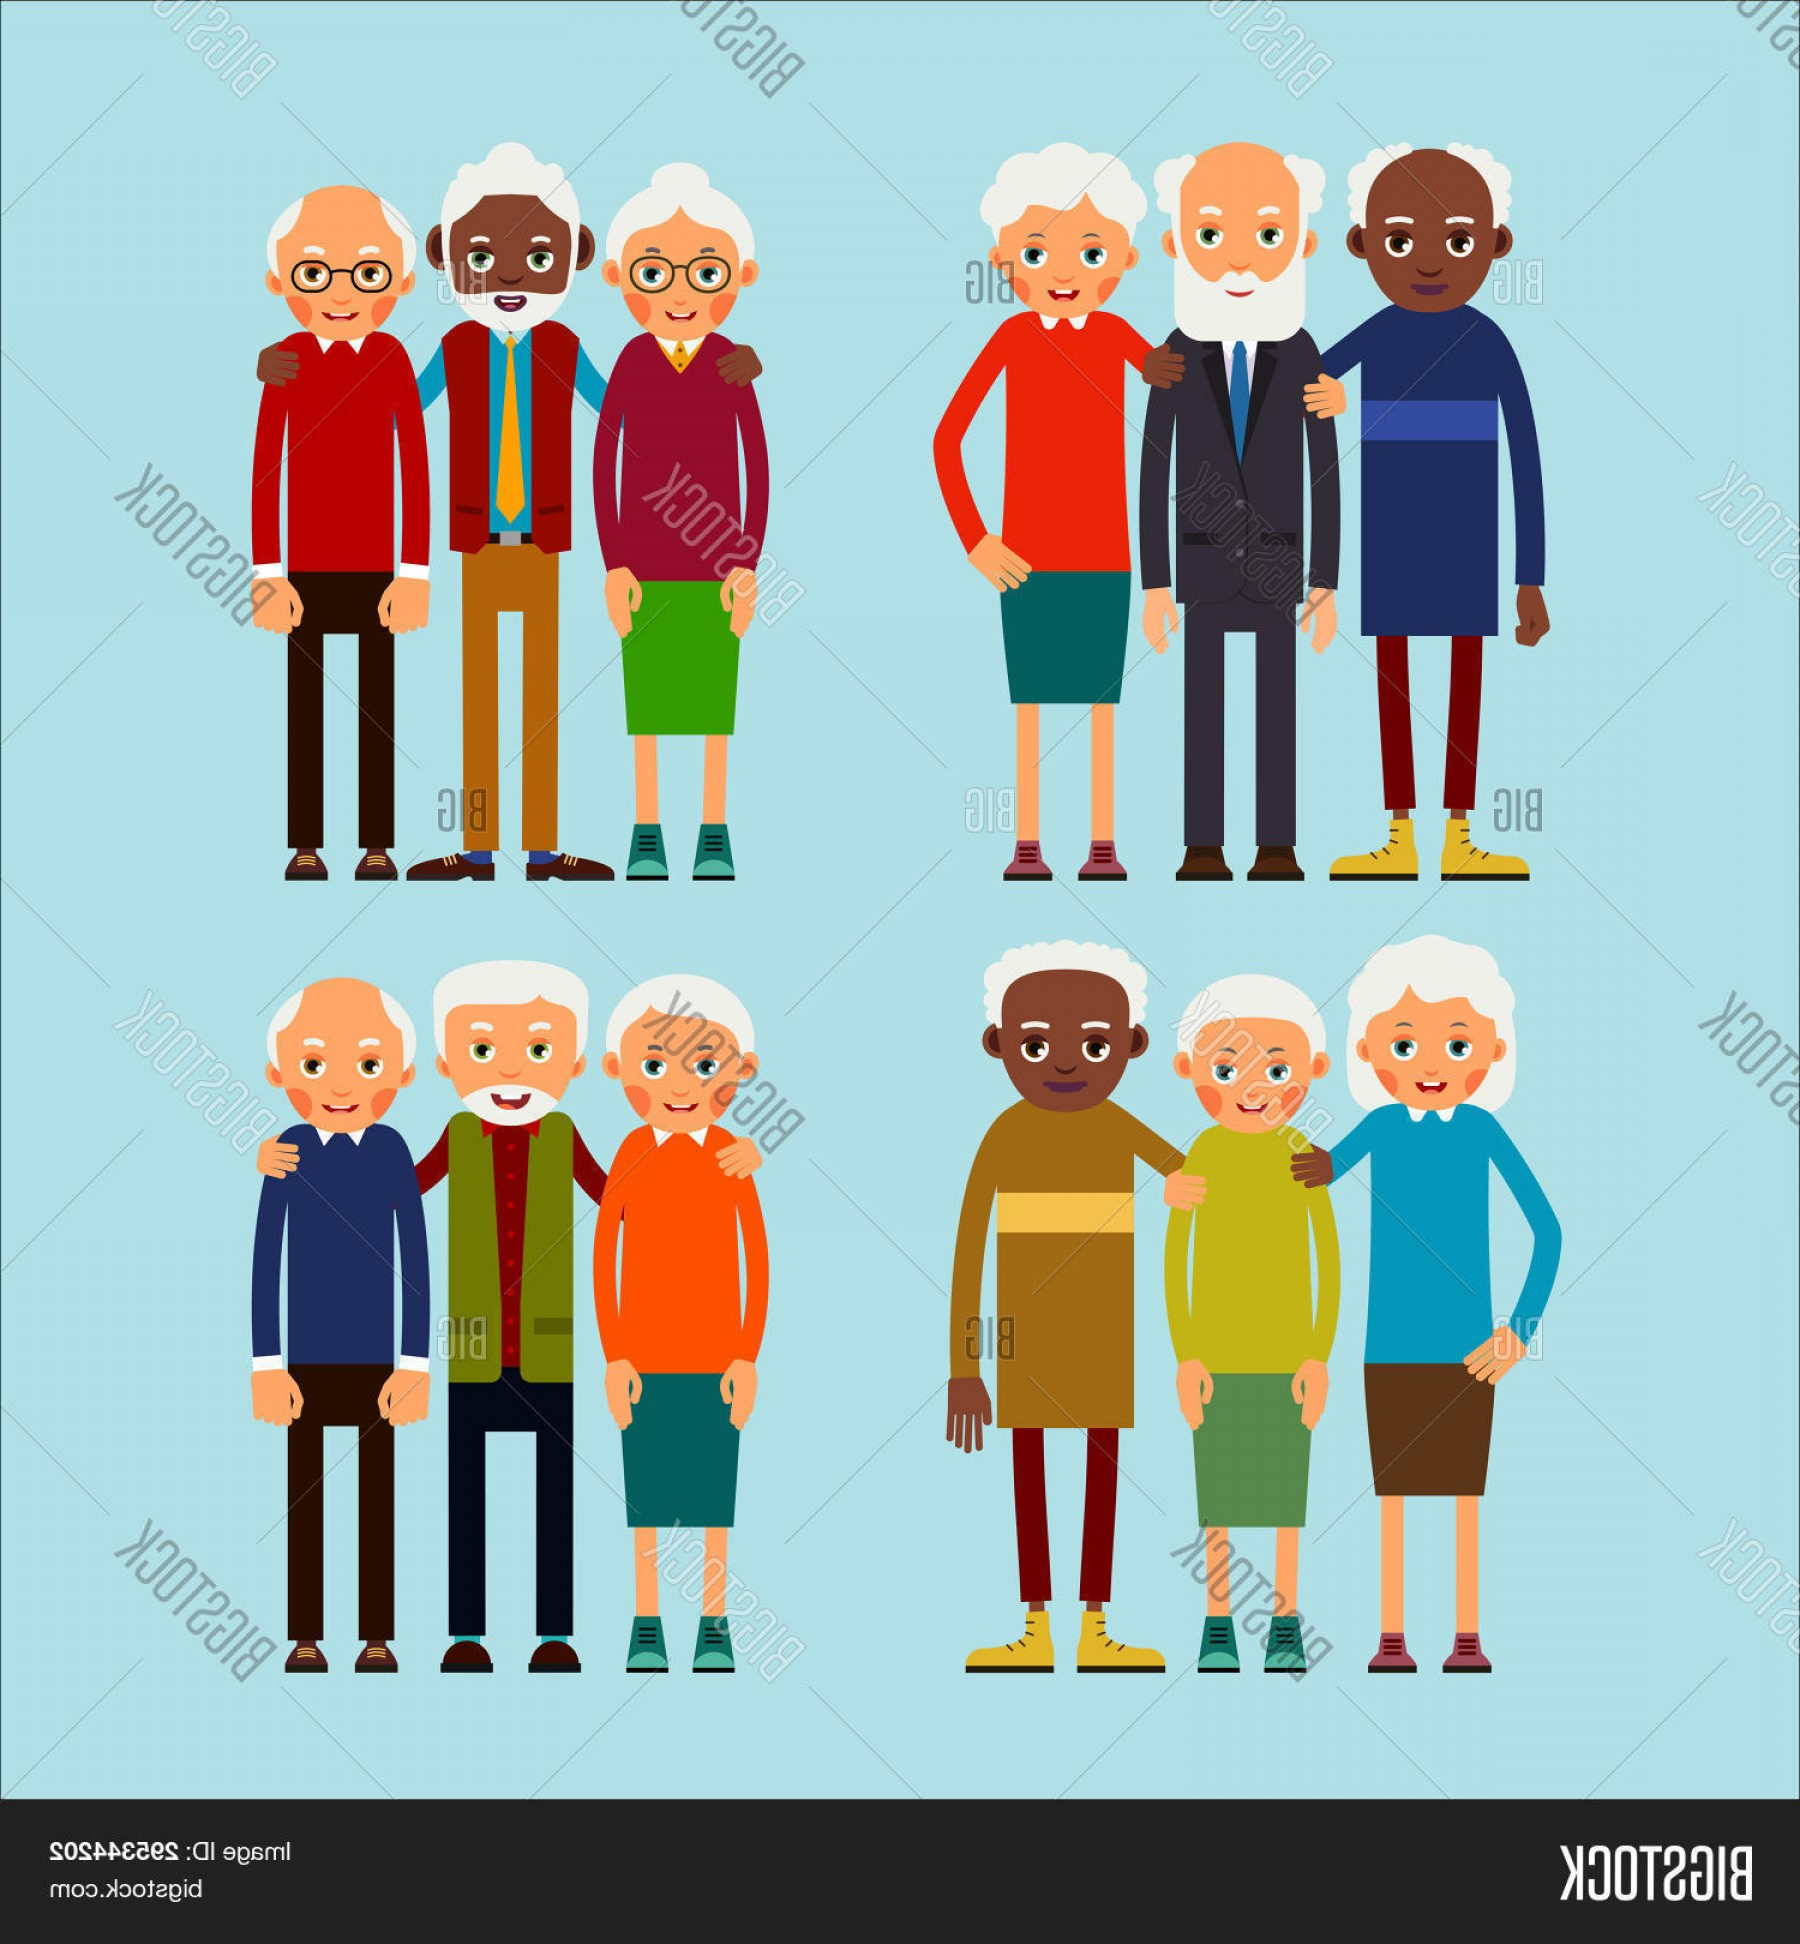 People Standing Vector: Stock Vector Old People Standing Elderly Men And Women Europeans And African American Ethnic Friends Senior Sta